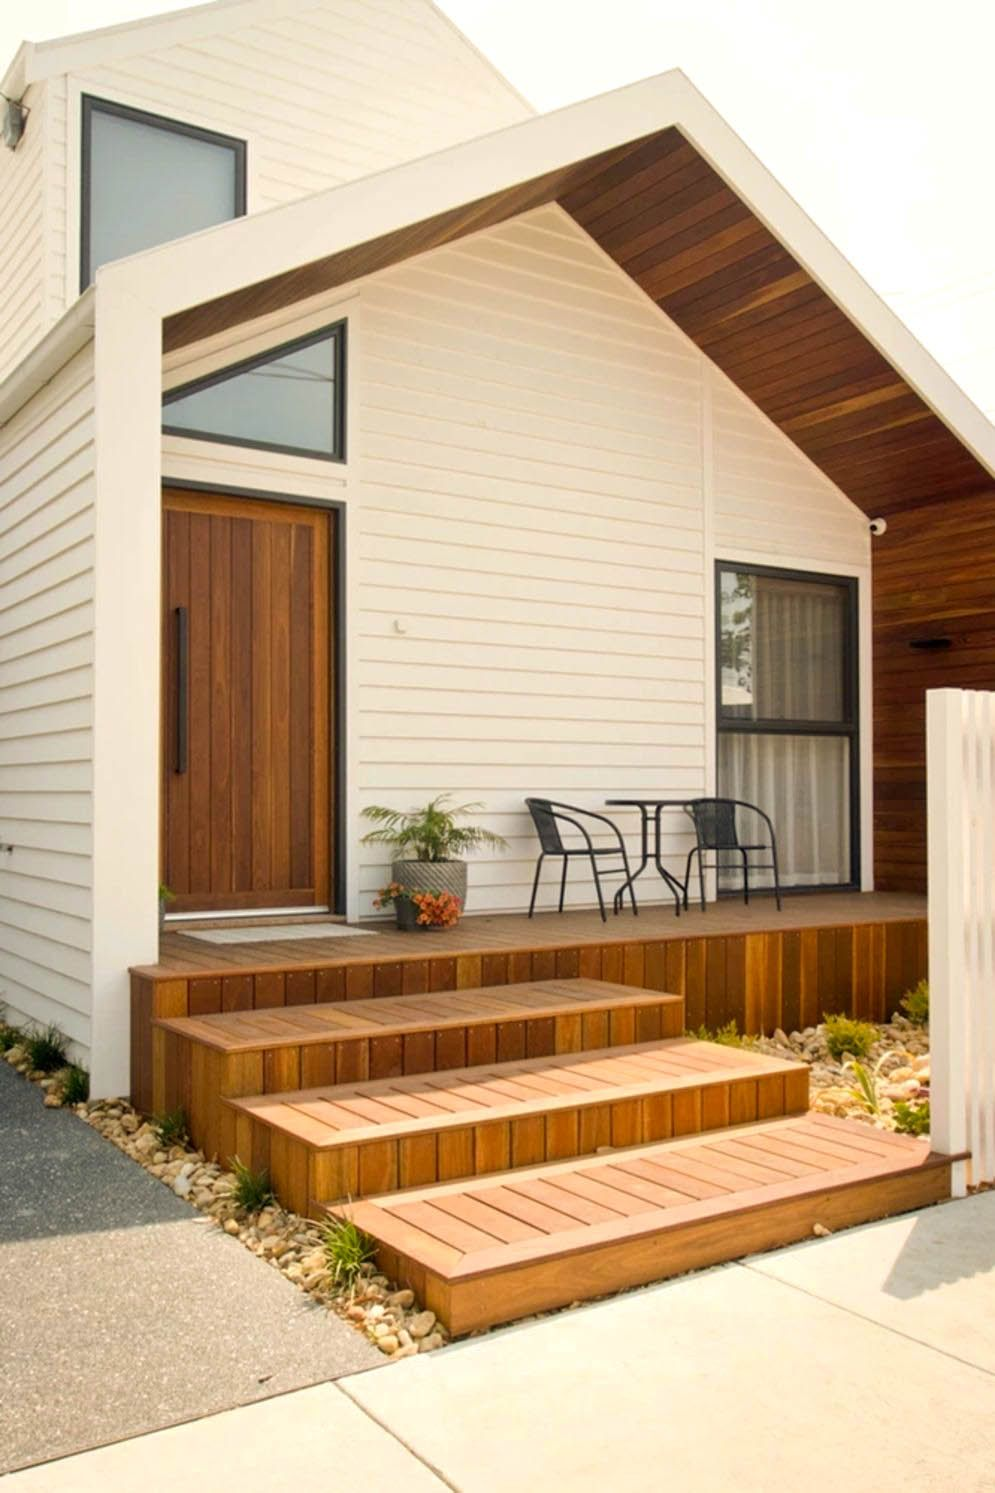 https://elonahome.com/wp-content/uploads/2020/06/Simple-facade-concept-Moonee-Pond-Gable-House-mixing-wood-and-bright-color-to-give-everyone-warm-welcome.jpg